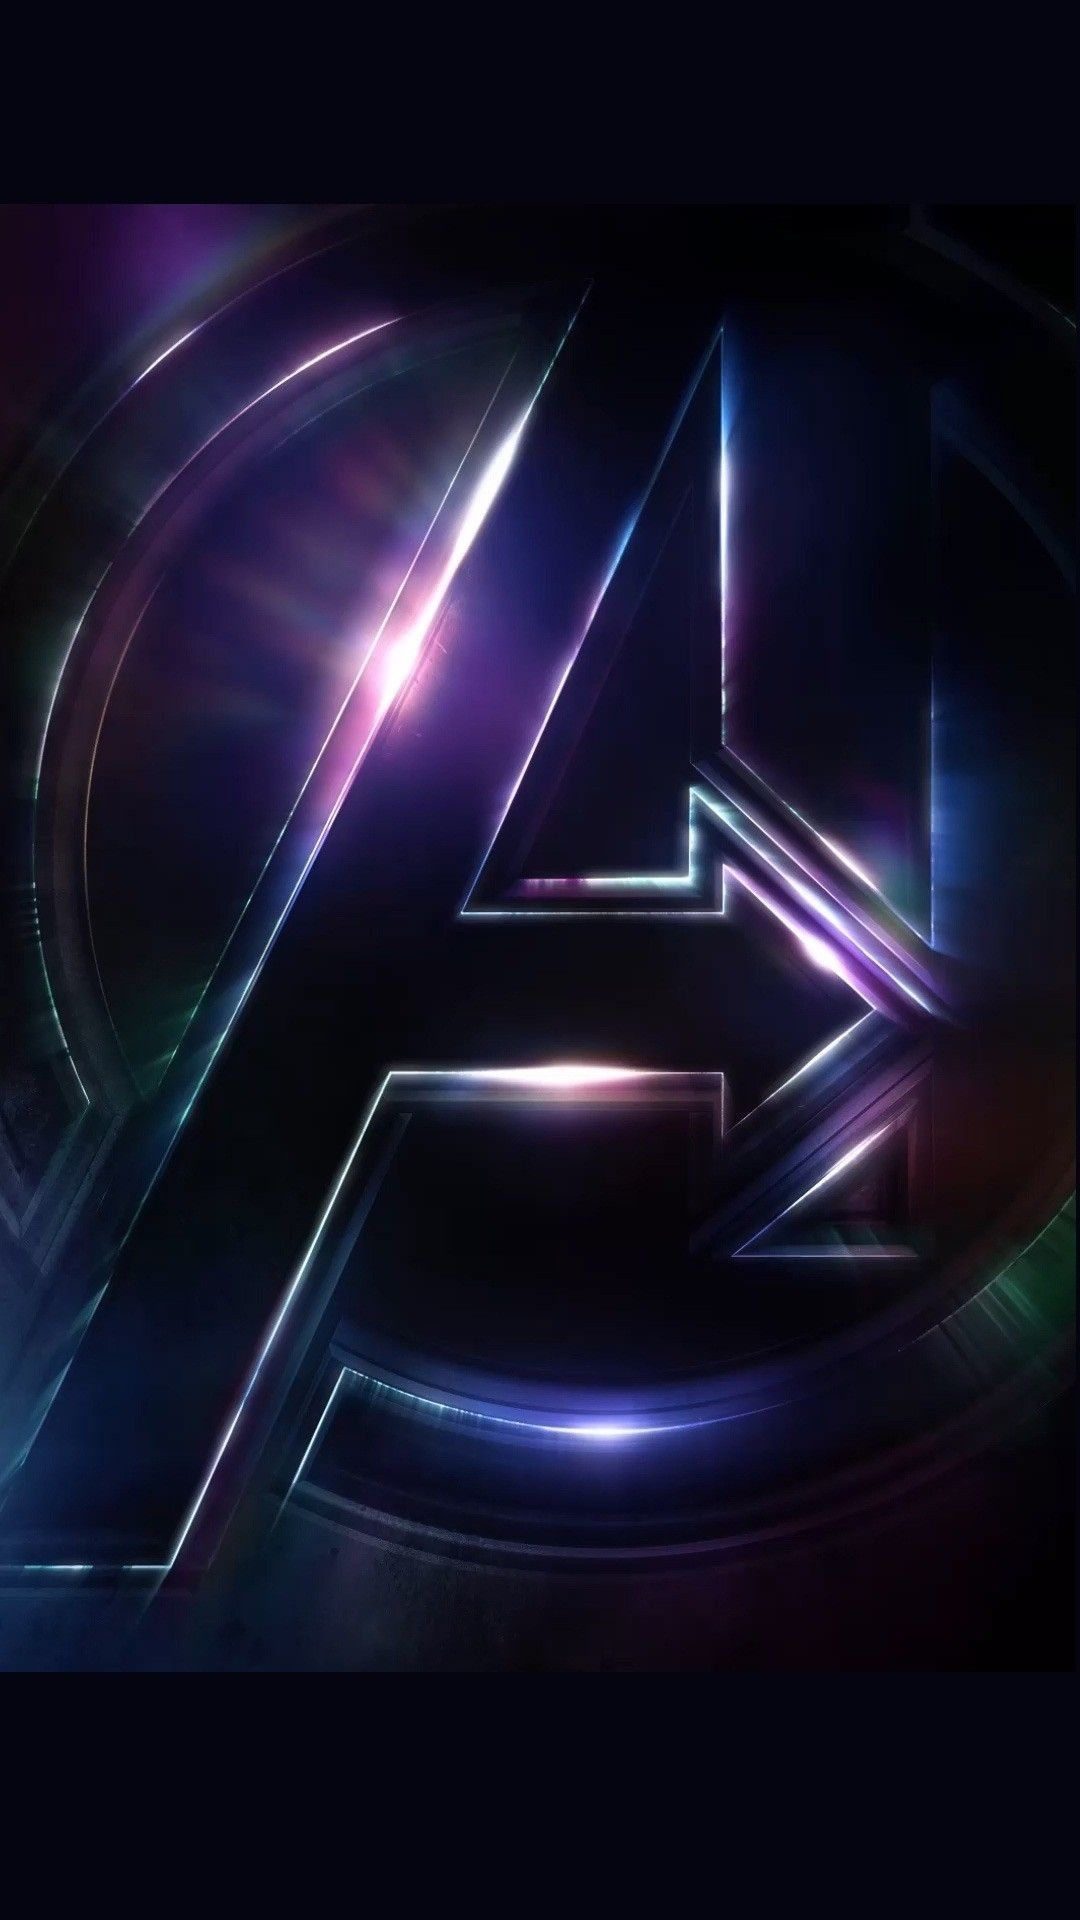 Logo Avengers Android Background Best Wallpapers Android Android Wallpaper Witch Wallpaper